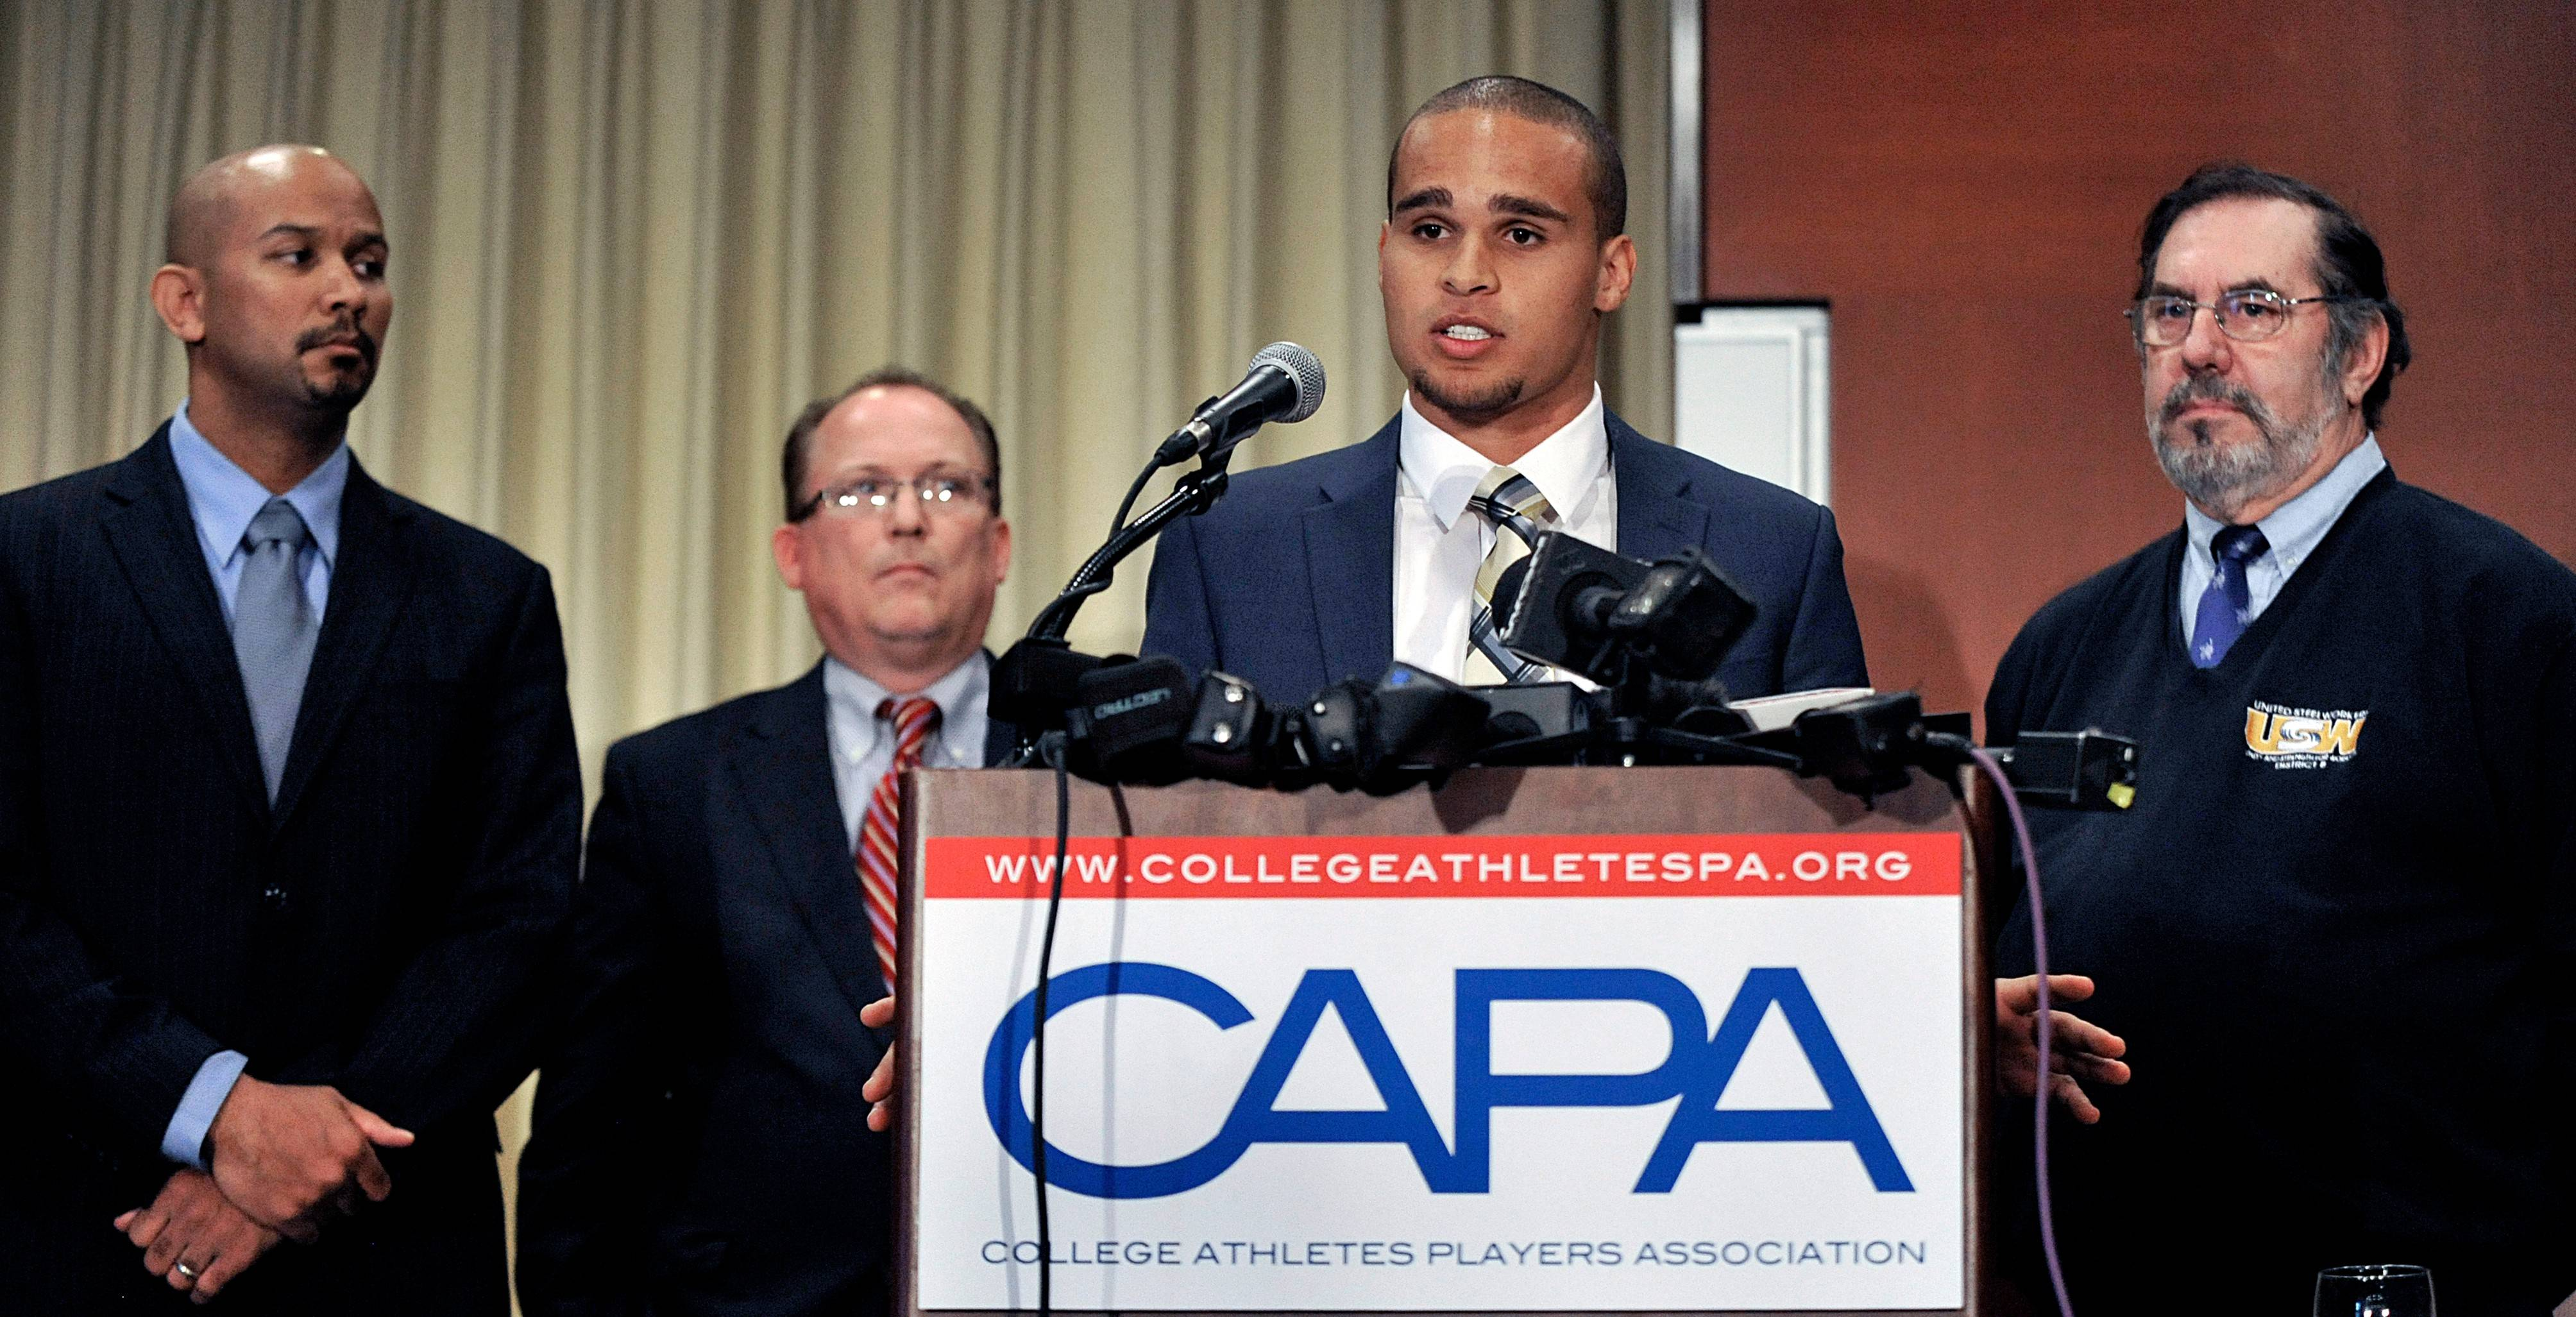 Northwestern quarterback Kain Colter, second from right, took a leading role in establishing the College Athletes Players Association, or CAPA, which would take the lead in organizing the players now that the National Labor Relations Board said football players at Northwestern University can create the nation's first college athlete's union.